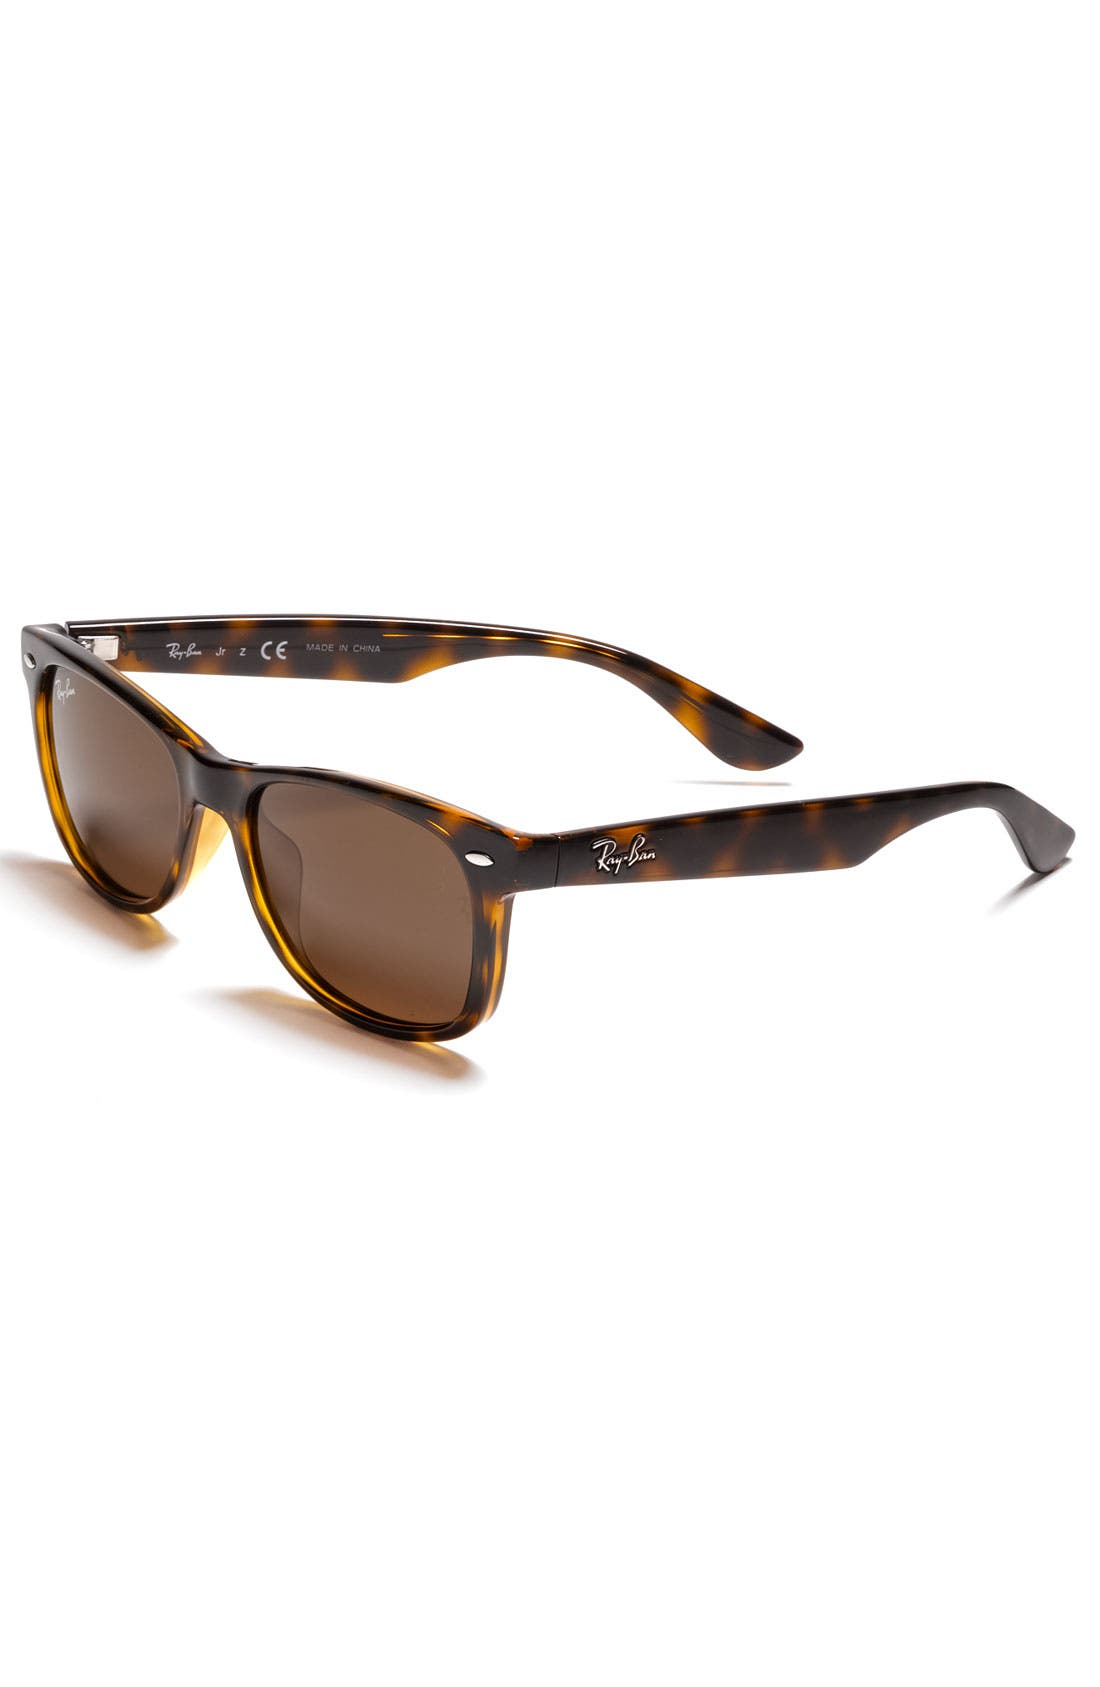 Main Image - Ray-Ban Wayfarer 47mm Sunglasses (Big Boys)